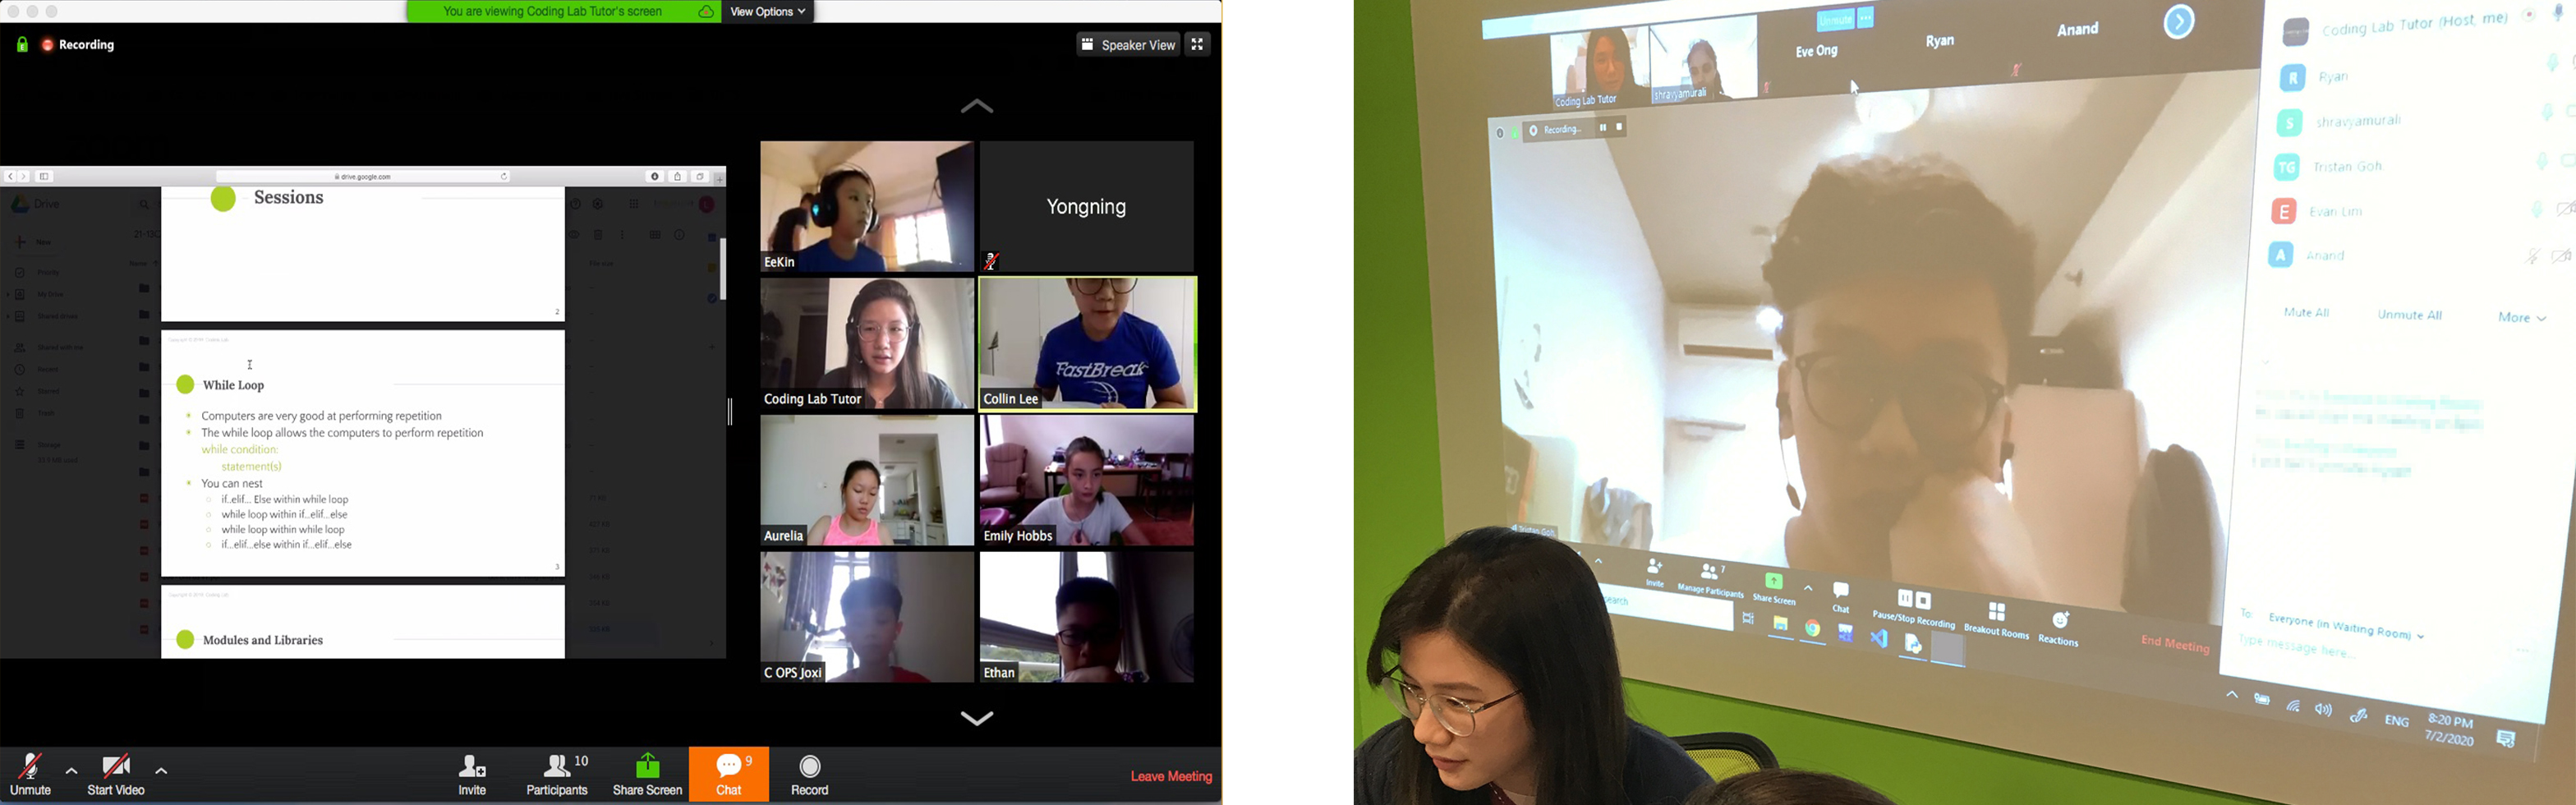 One of our LIVE video conferences in action with our students (left) and our tutors' e-learning training (right).